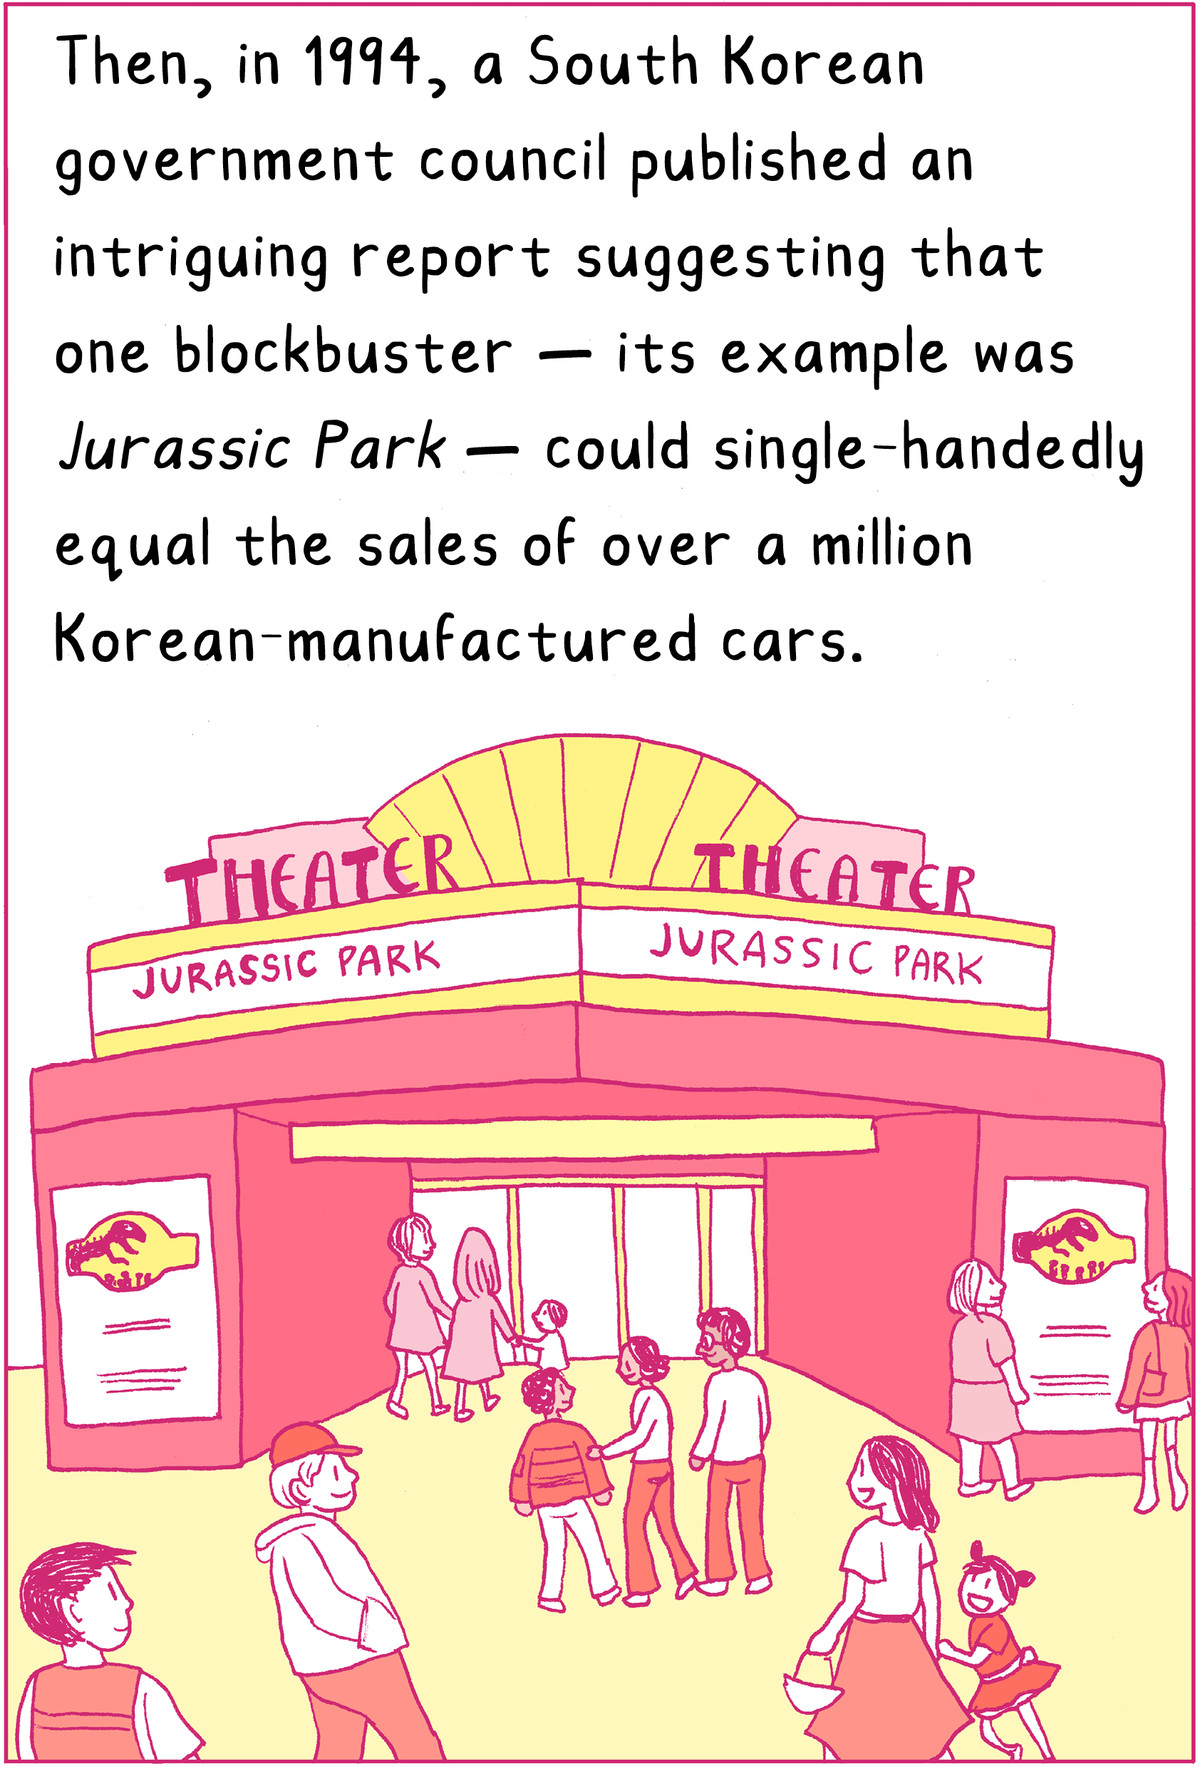 Then, in 1994, a South Korean government council published an intriguing report pointing out that one blockbuster — its example was Jurassic Park — could single-handedly equal the sales of over a million Korean-manufactured cars.